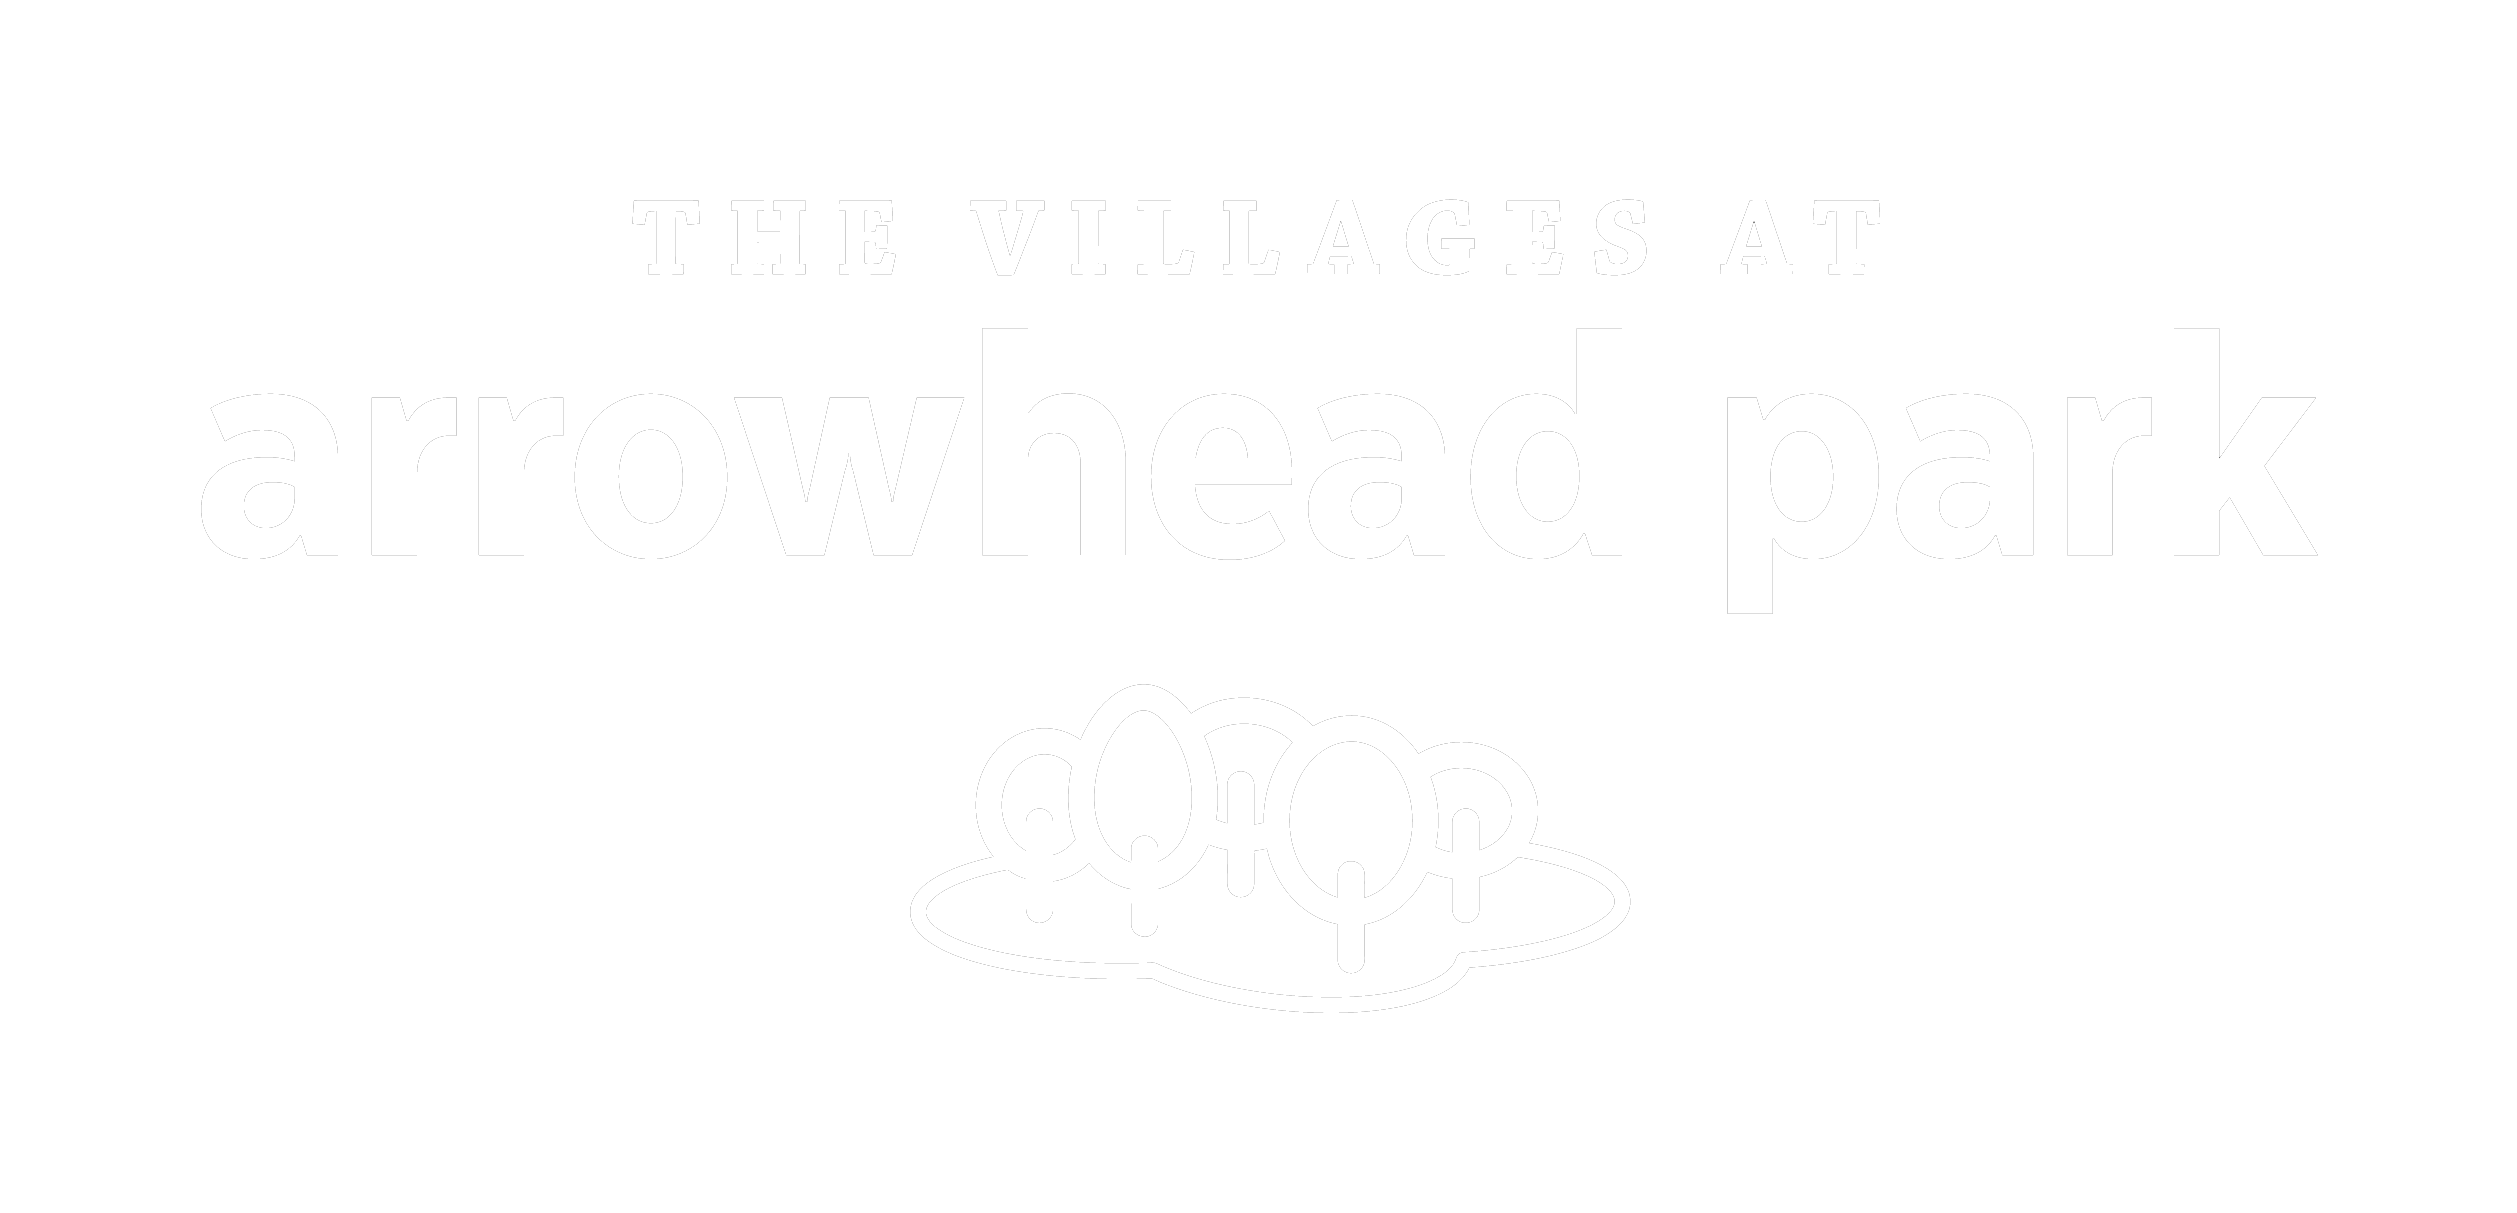 The Villages at Arrowhead Park